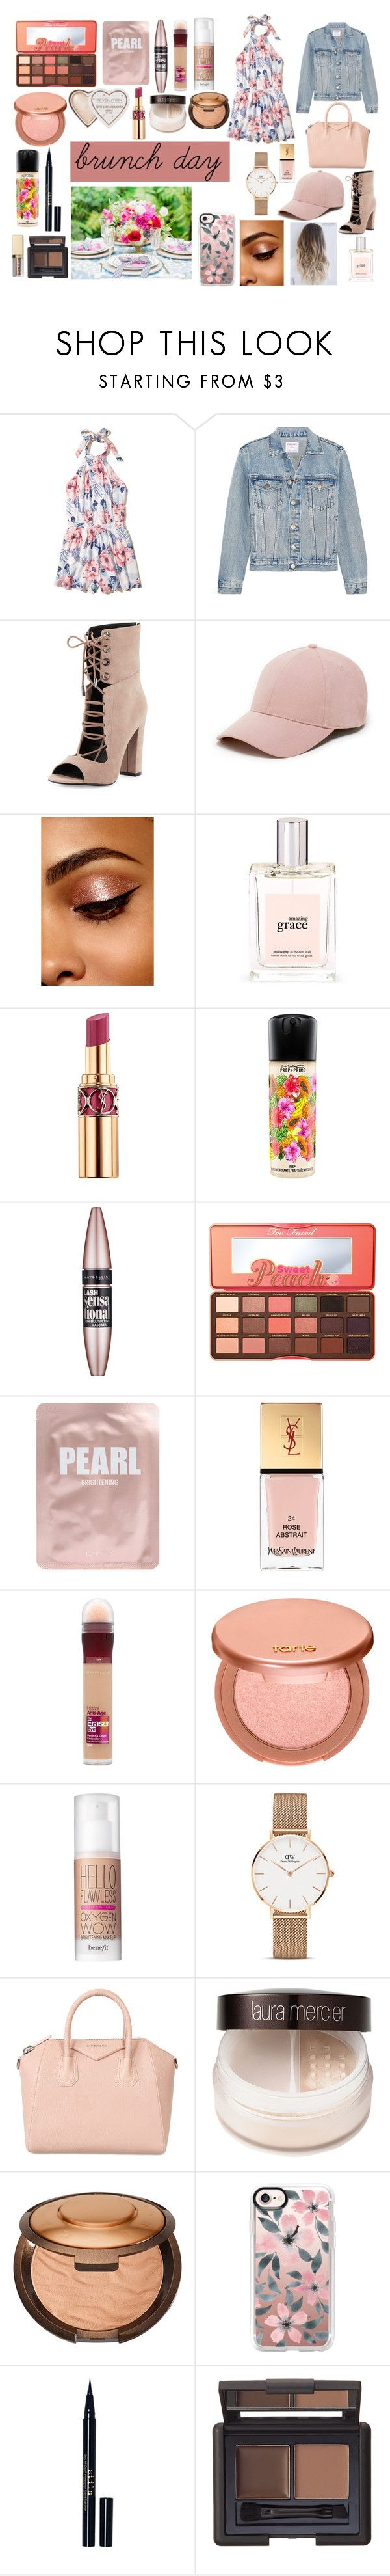 """brunch day"" by valen200329 on Polyvore featuring moda, Hollister Co., Frame, Kendall + Kylie, Sole Society, philosophy, Yves Saint Laurent, MAC Cosmetics, Maybelline y Too Faced Cosmetics"